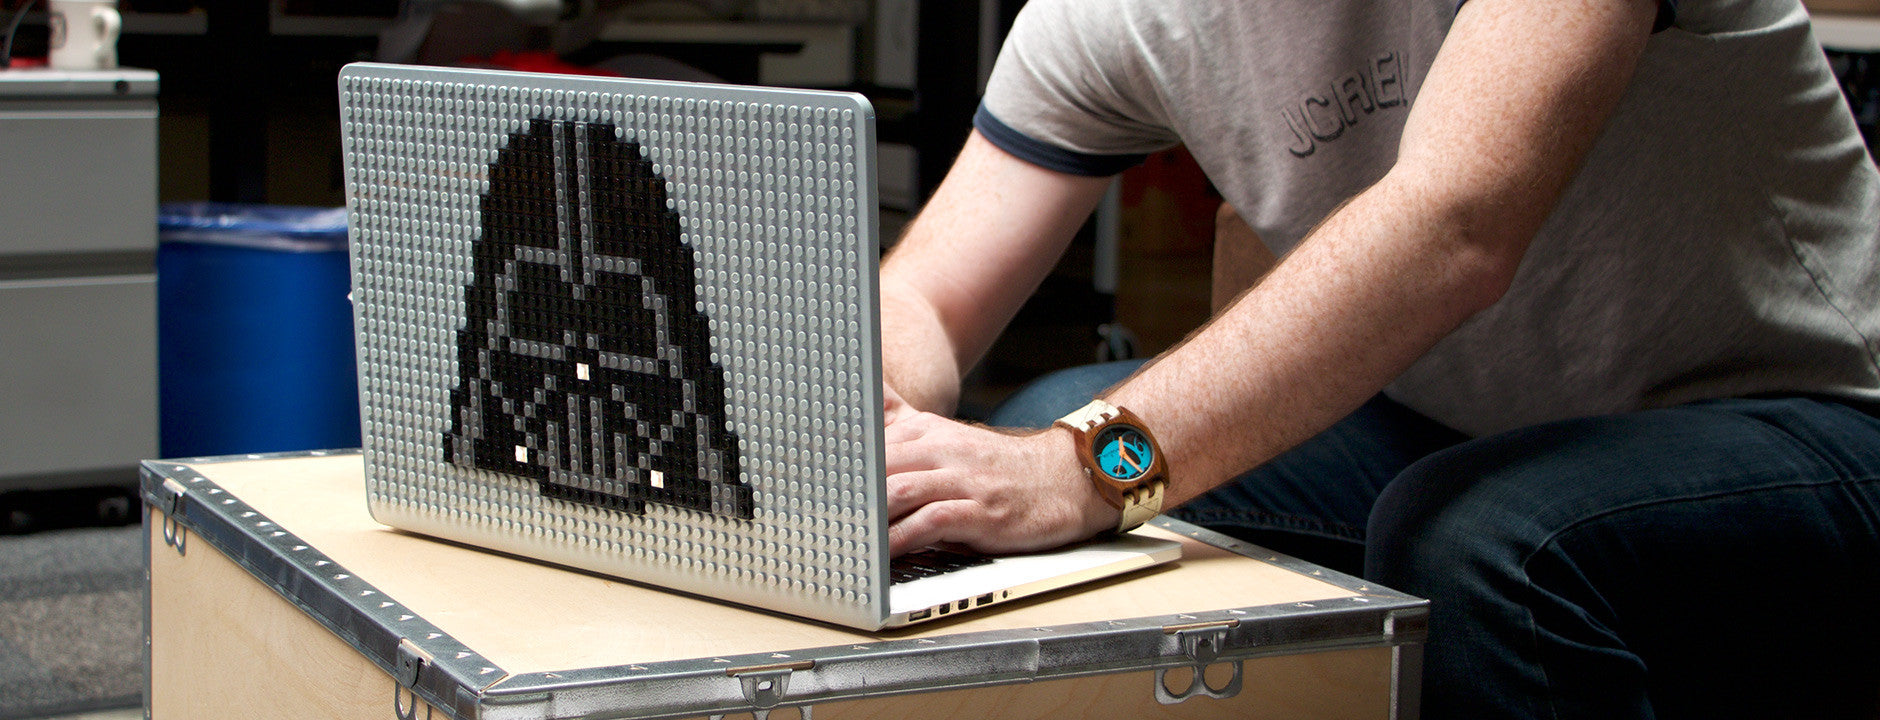 Star Wars MacBook Design